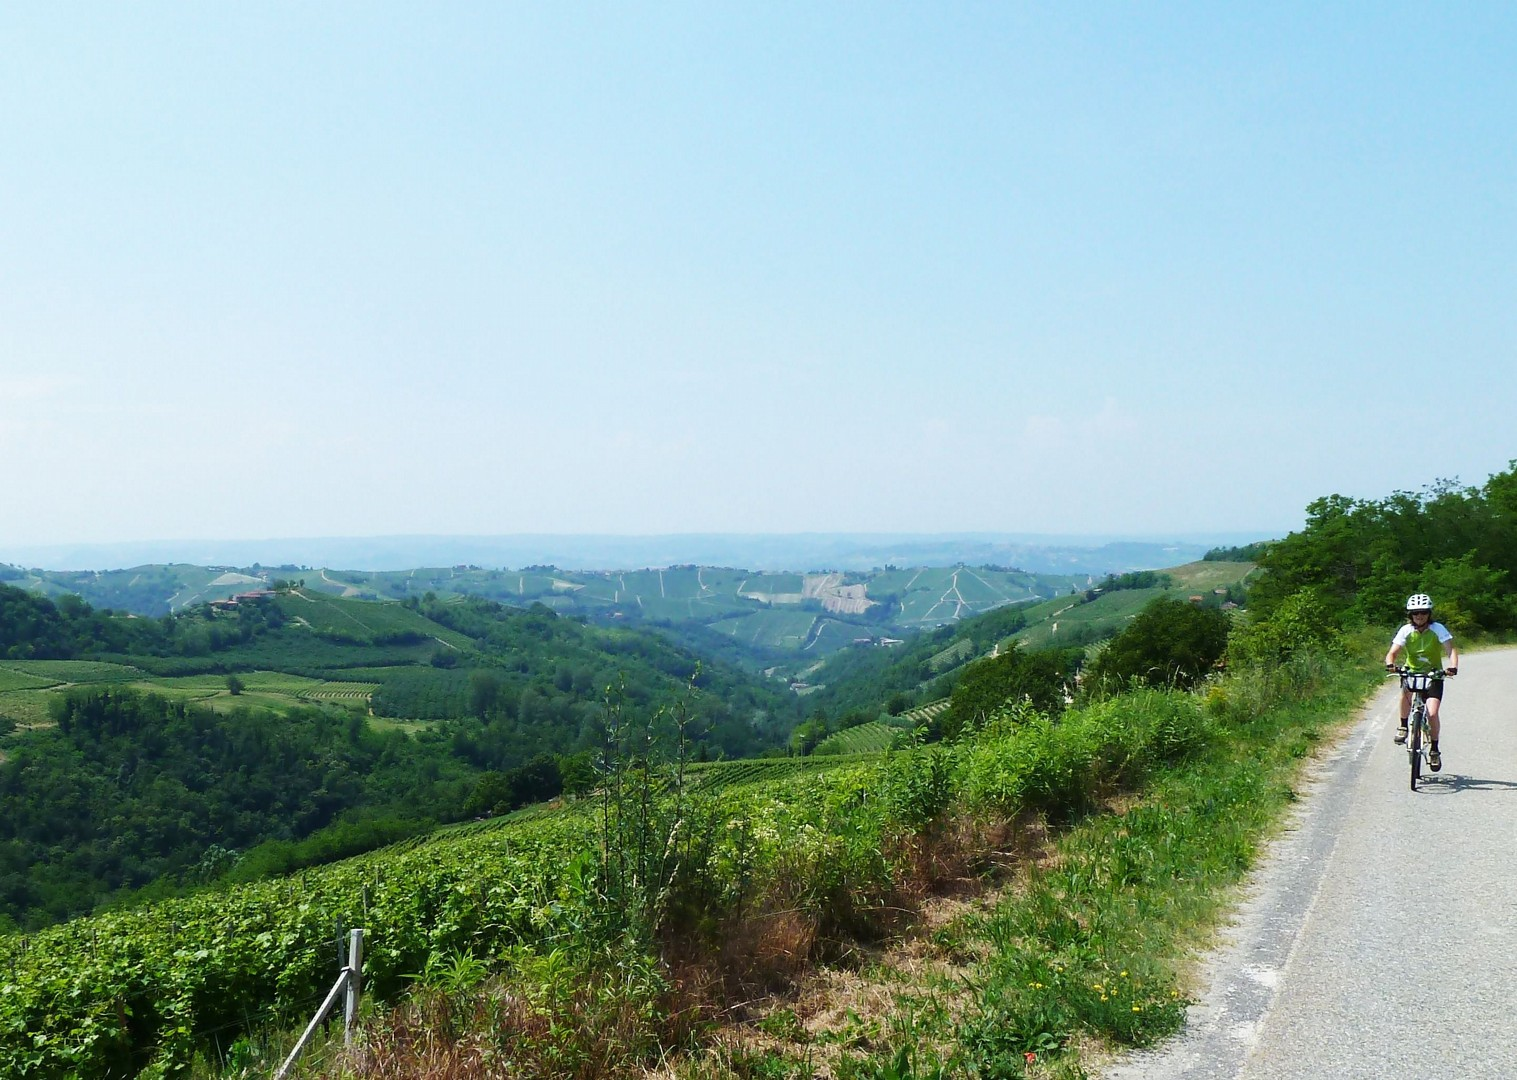 leisure-cycling-holiday-italy-piemontes-vineyards-and-views.jpg - Italy - Piemonte's Vineyards and Views - Leisure Cycling